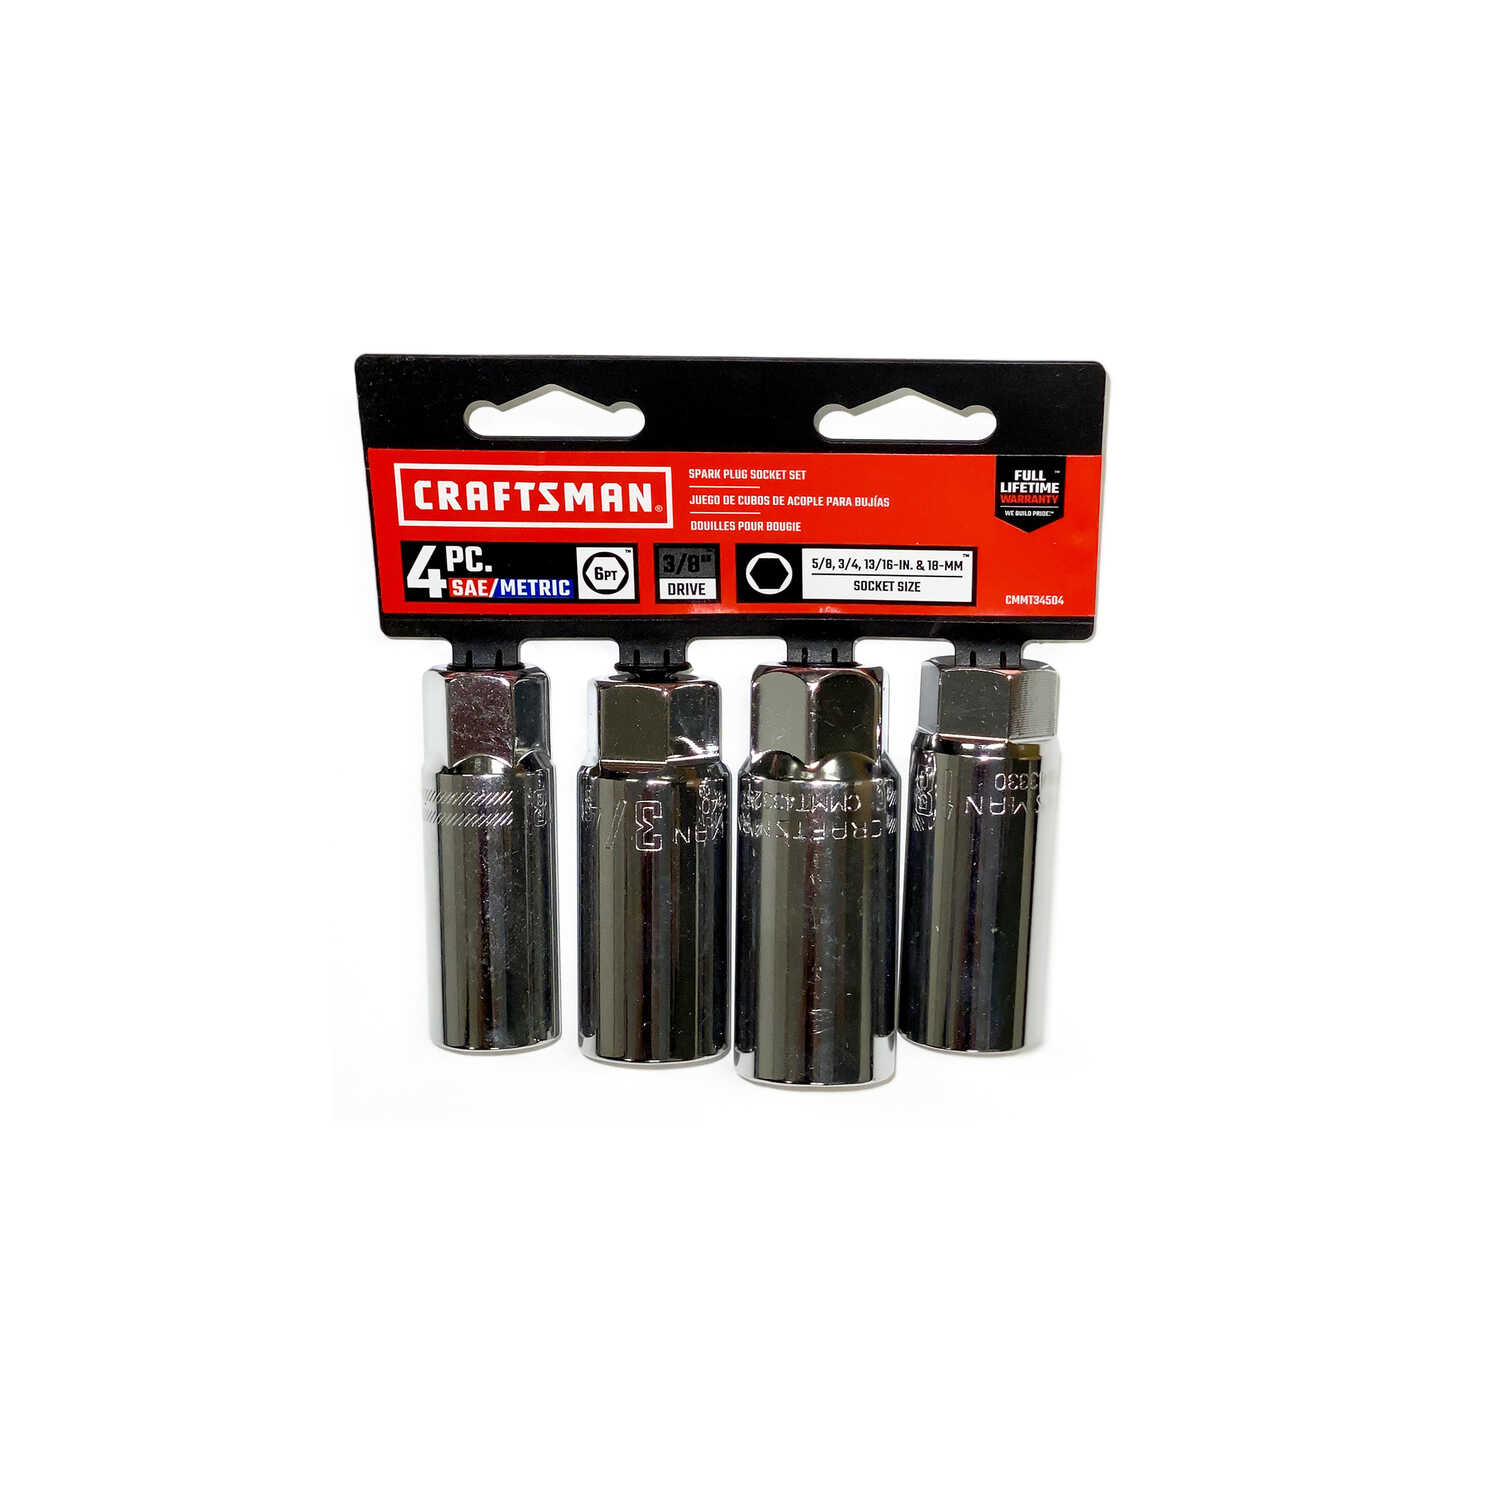 Craftsman 18 mm x 3/8 in  drive Metric and SAE 6 Point Standard